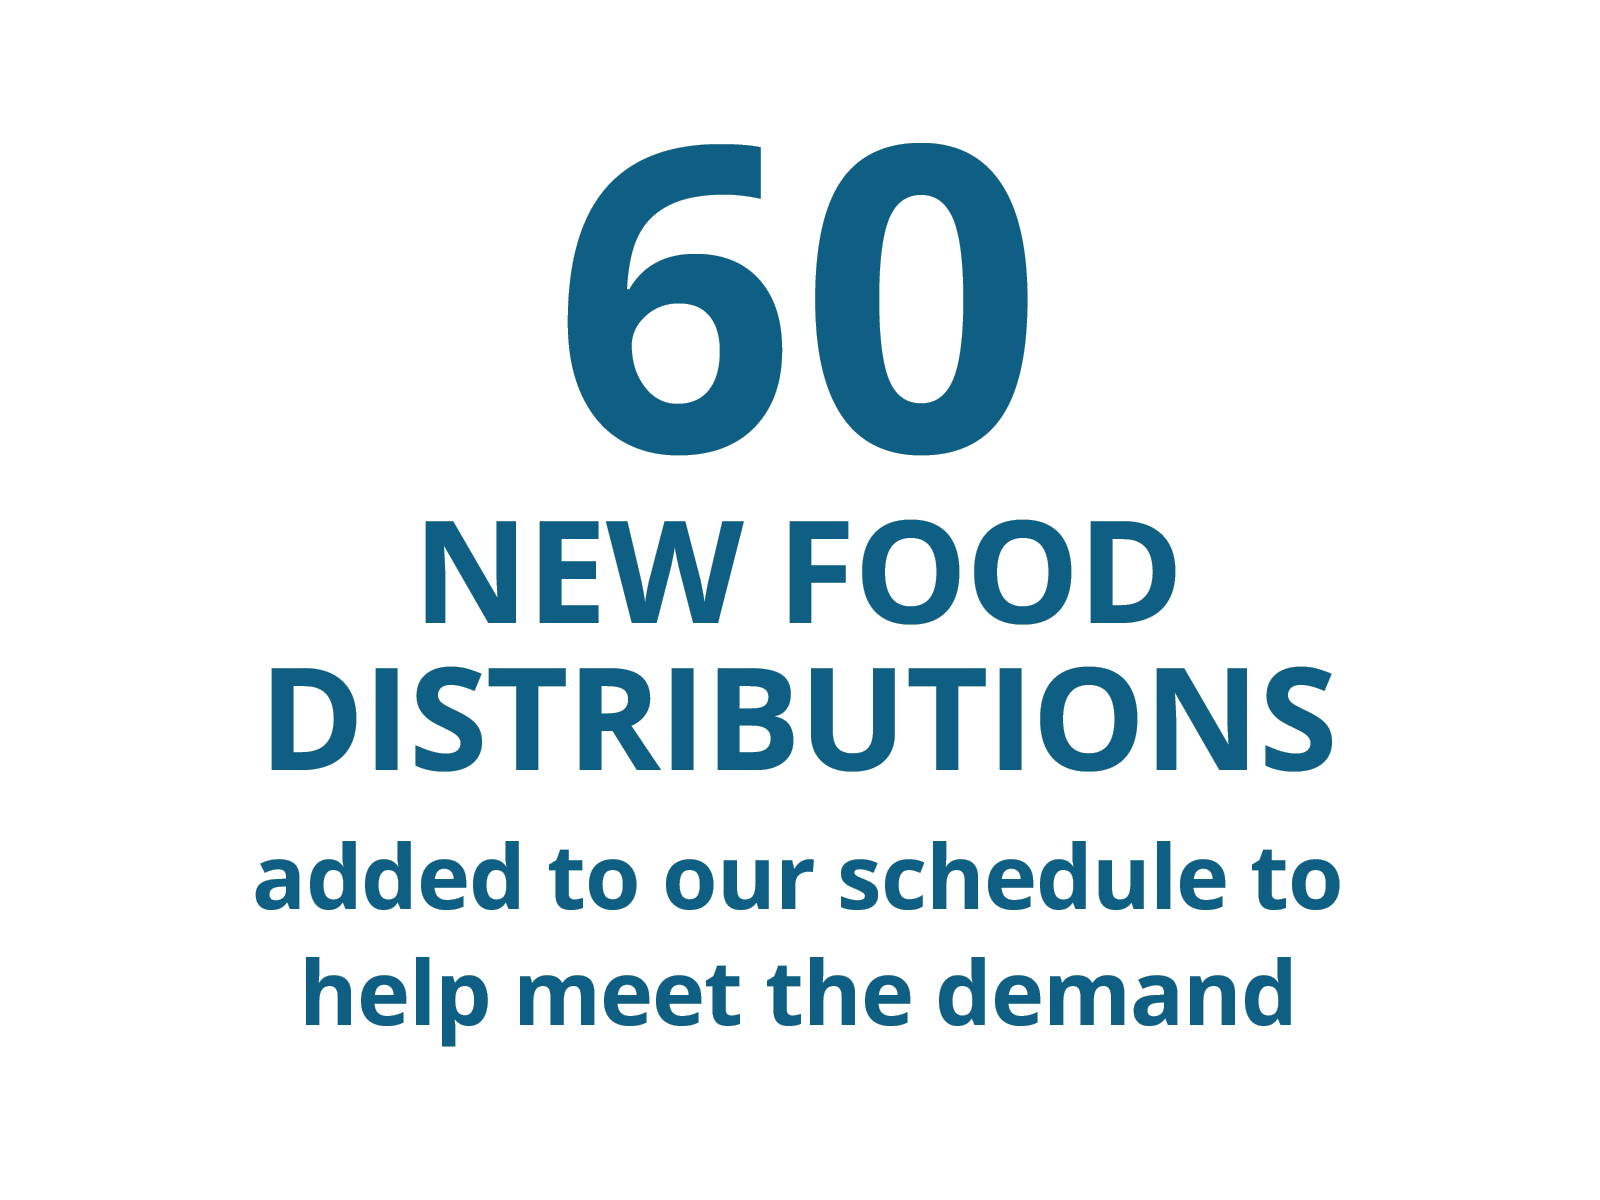 60 new food distributions aded to our schedule to help meet the demand